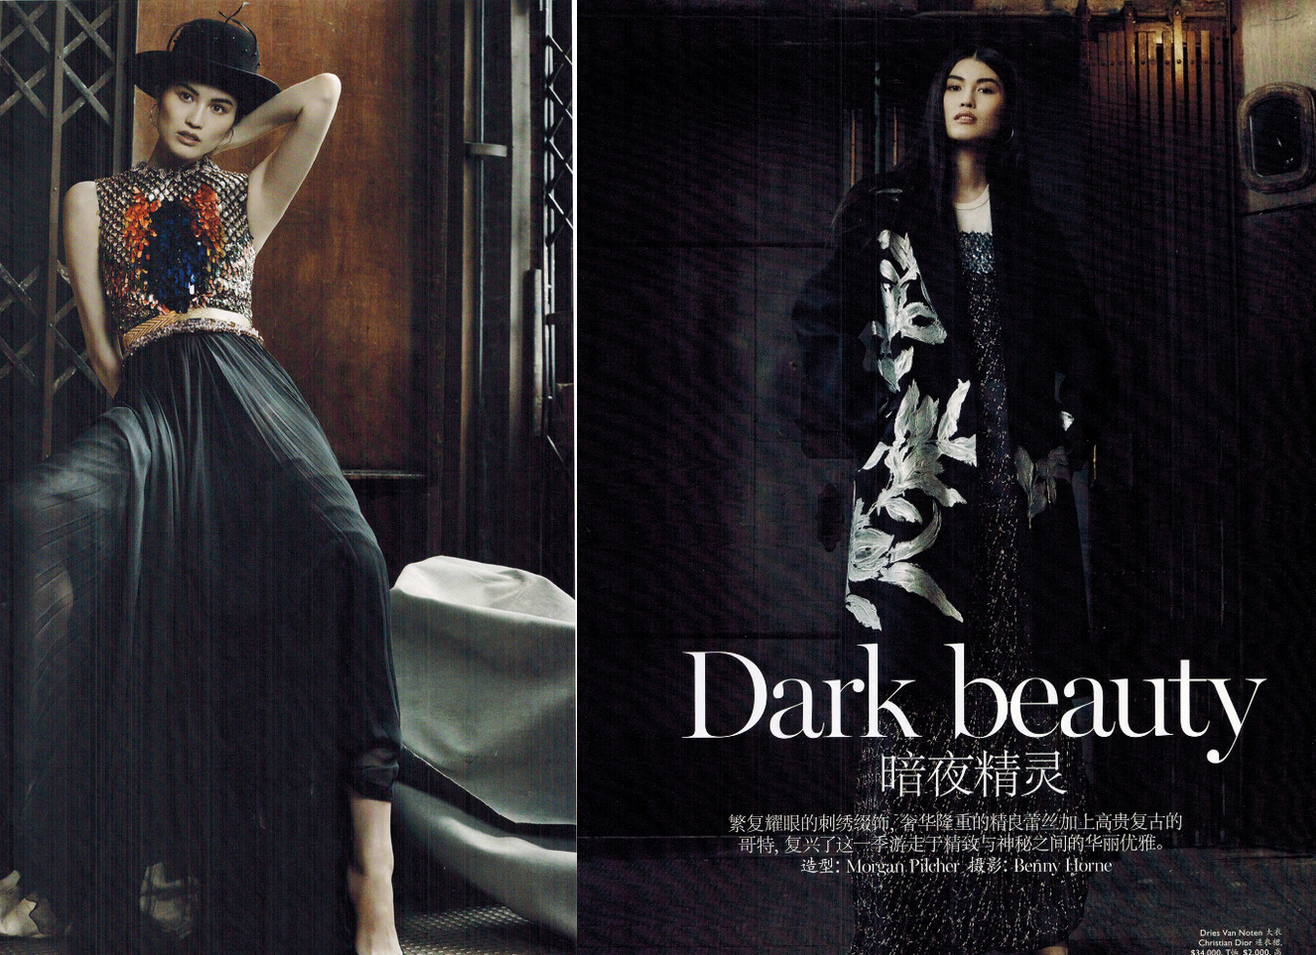 sui he on vogue australia photo shoot by benny horne and county fair productions 3